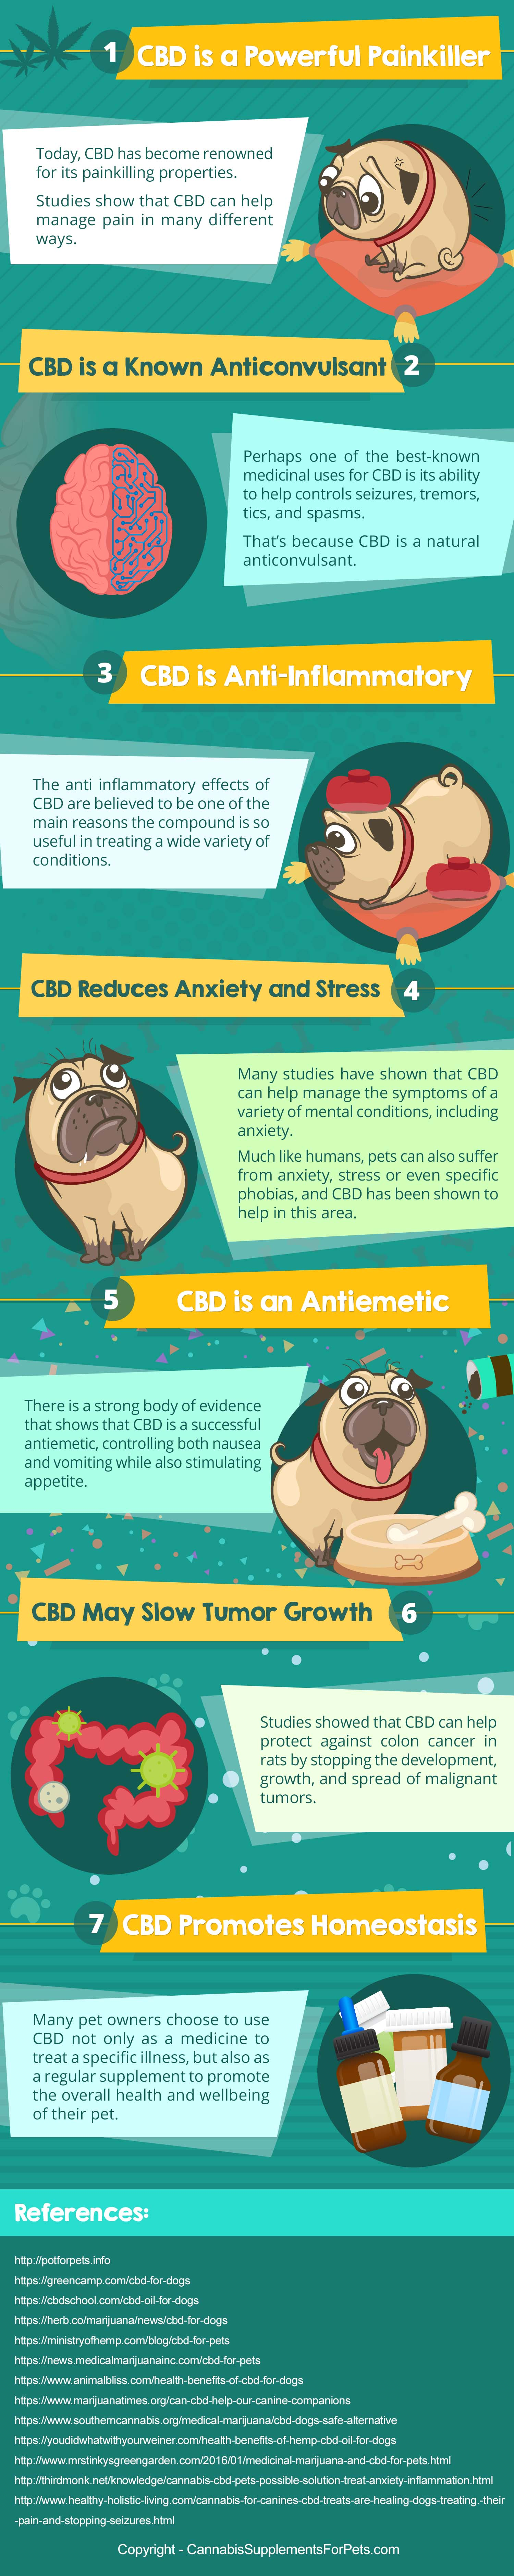 Infographic on the benefits of CBD for pets